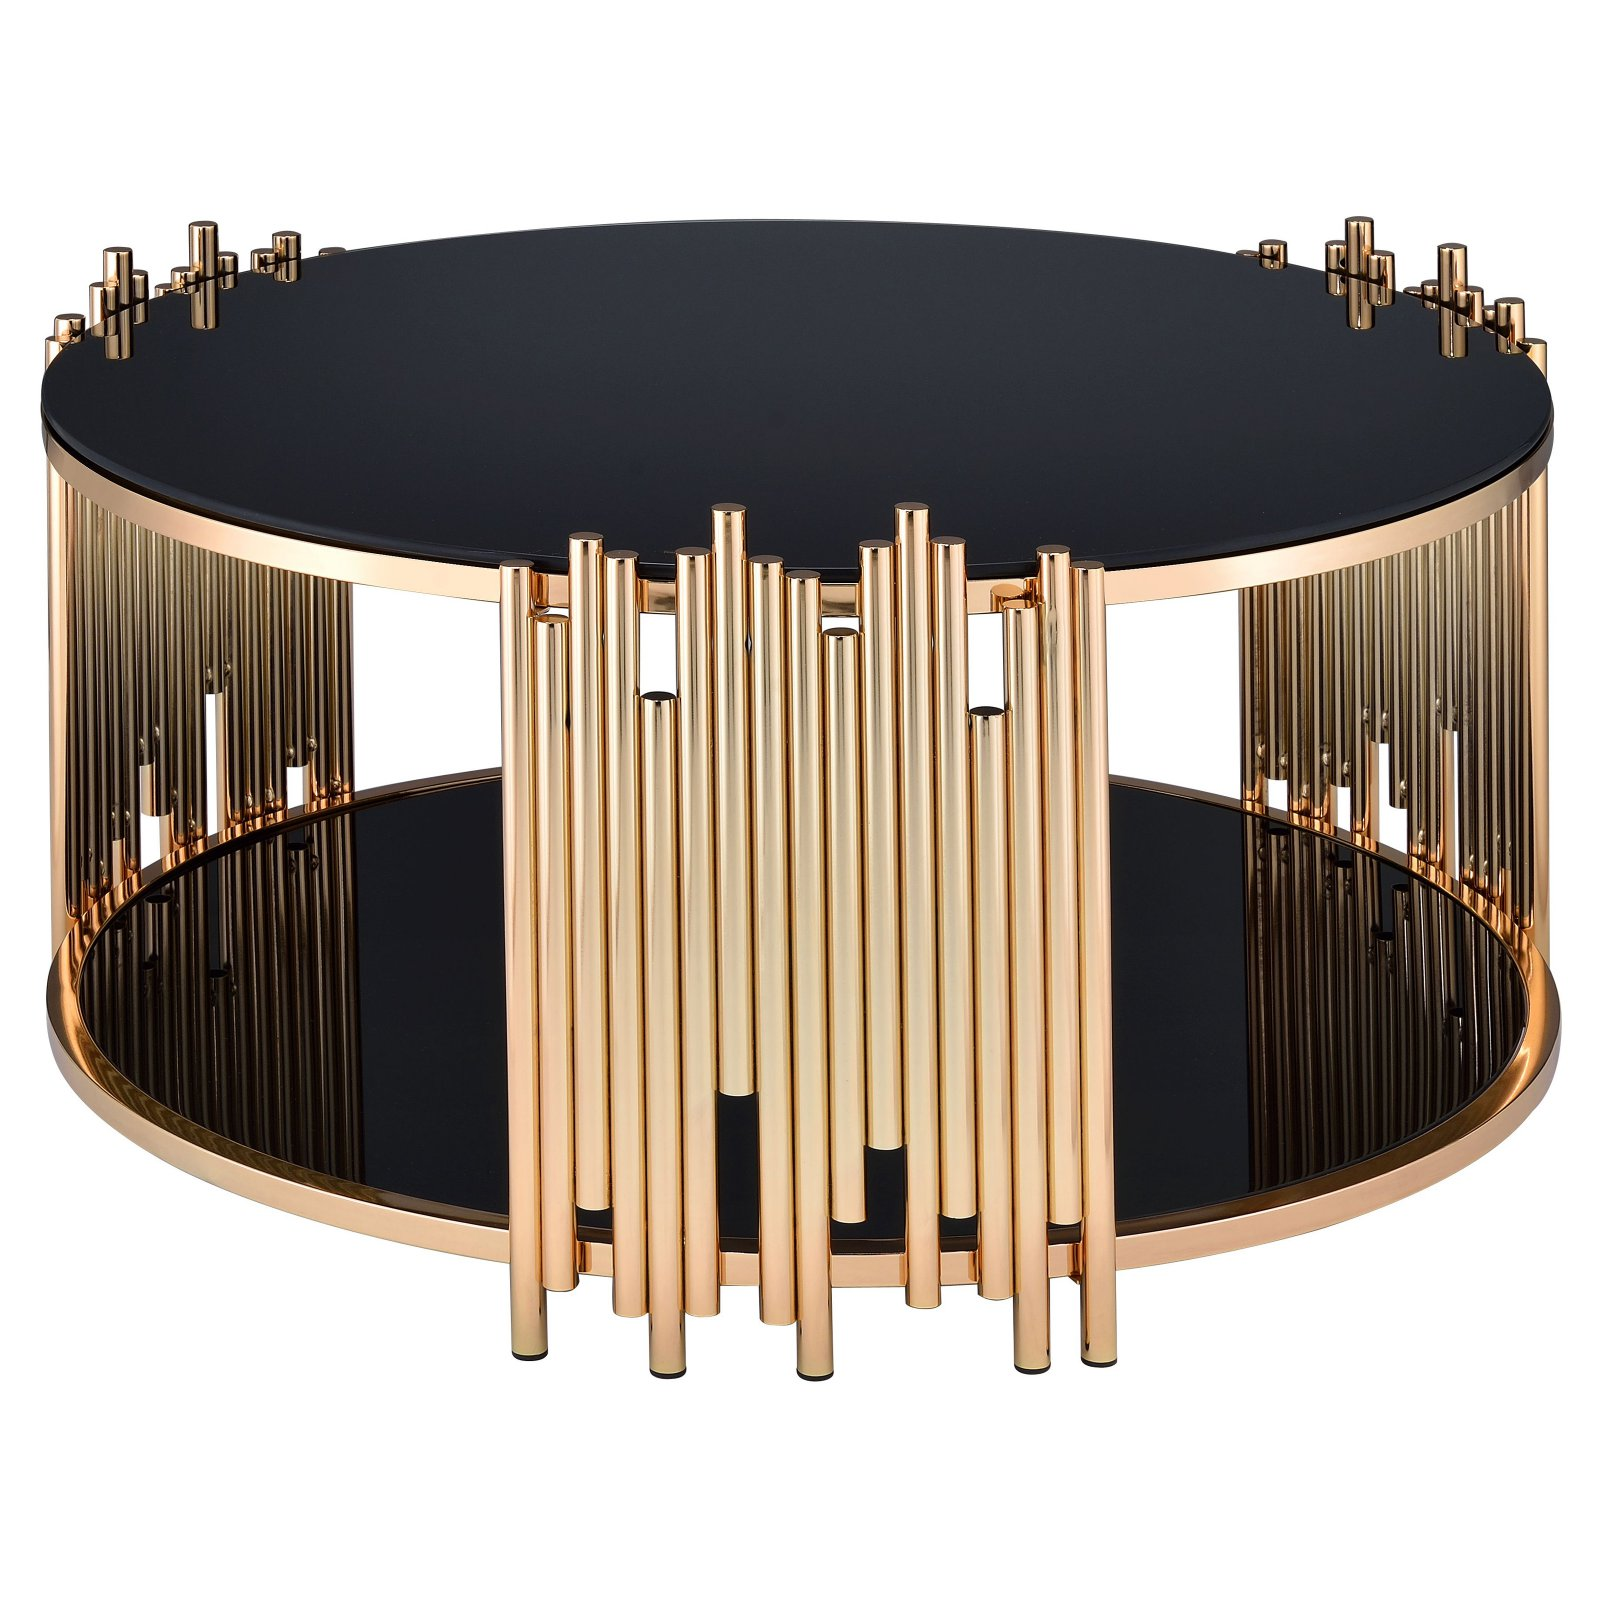 Acme Furniture Tanquin Coffee Table, Black Glass & Gold